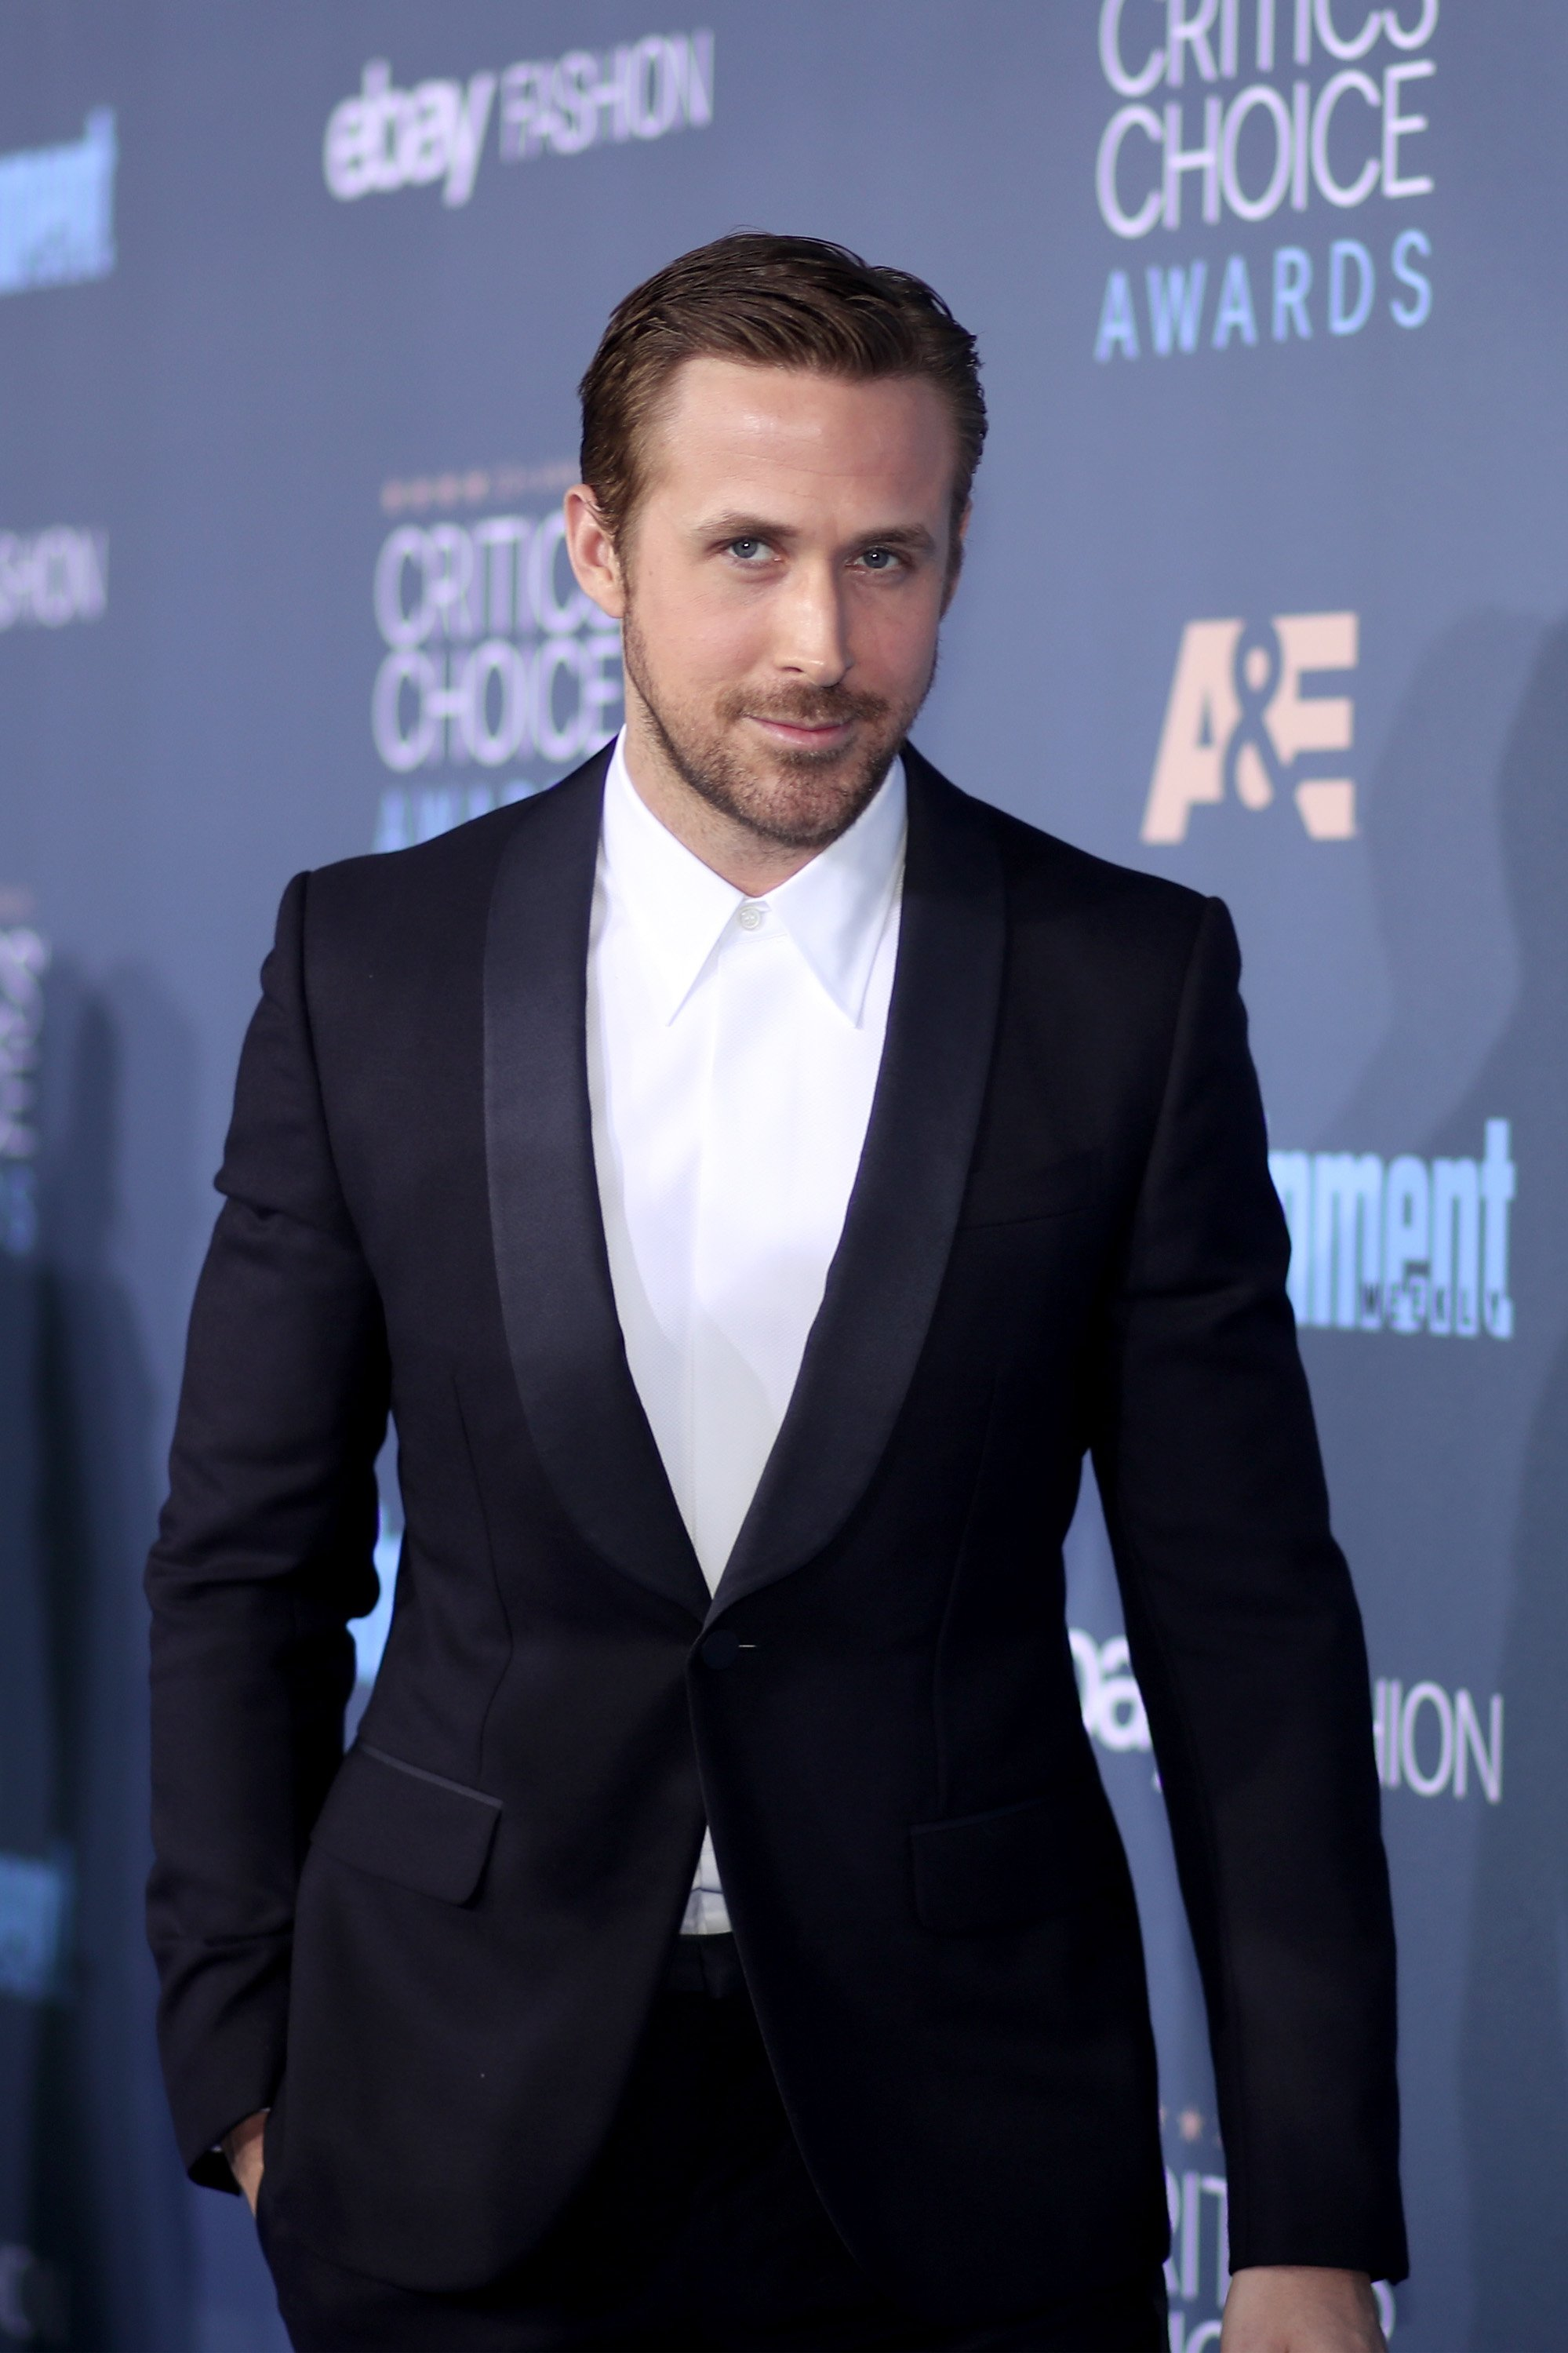 Image Credits: Getty Images / Christopher Polk | Actor Ryan Gosling attends The 22nd Annual Critics' Choice Awards at Barker Hangar on December 11, 2016 in Santa Monica, California.